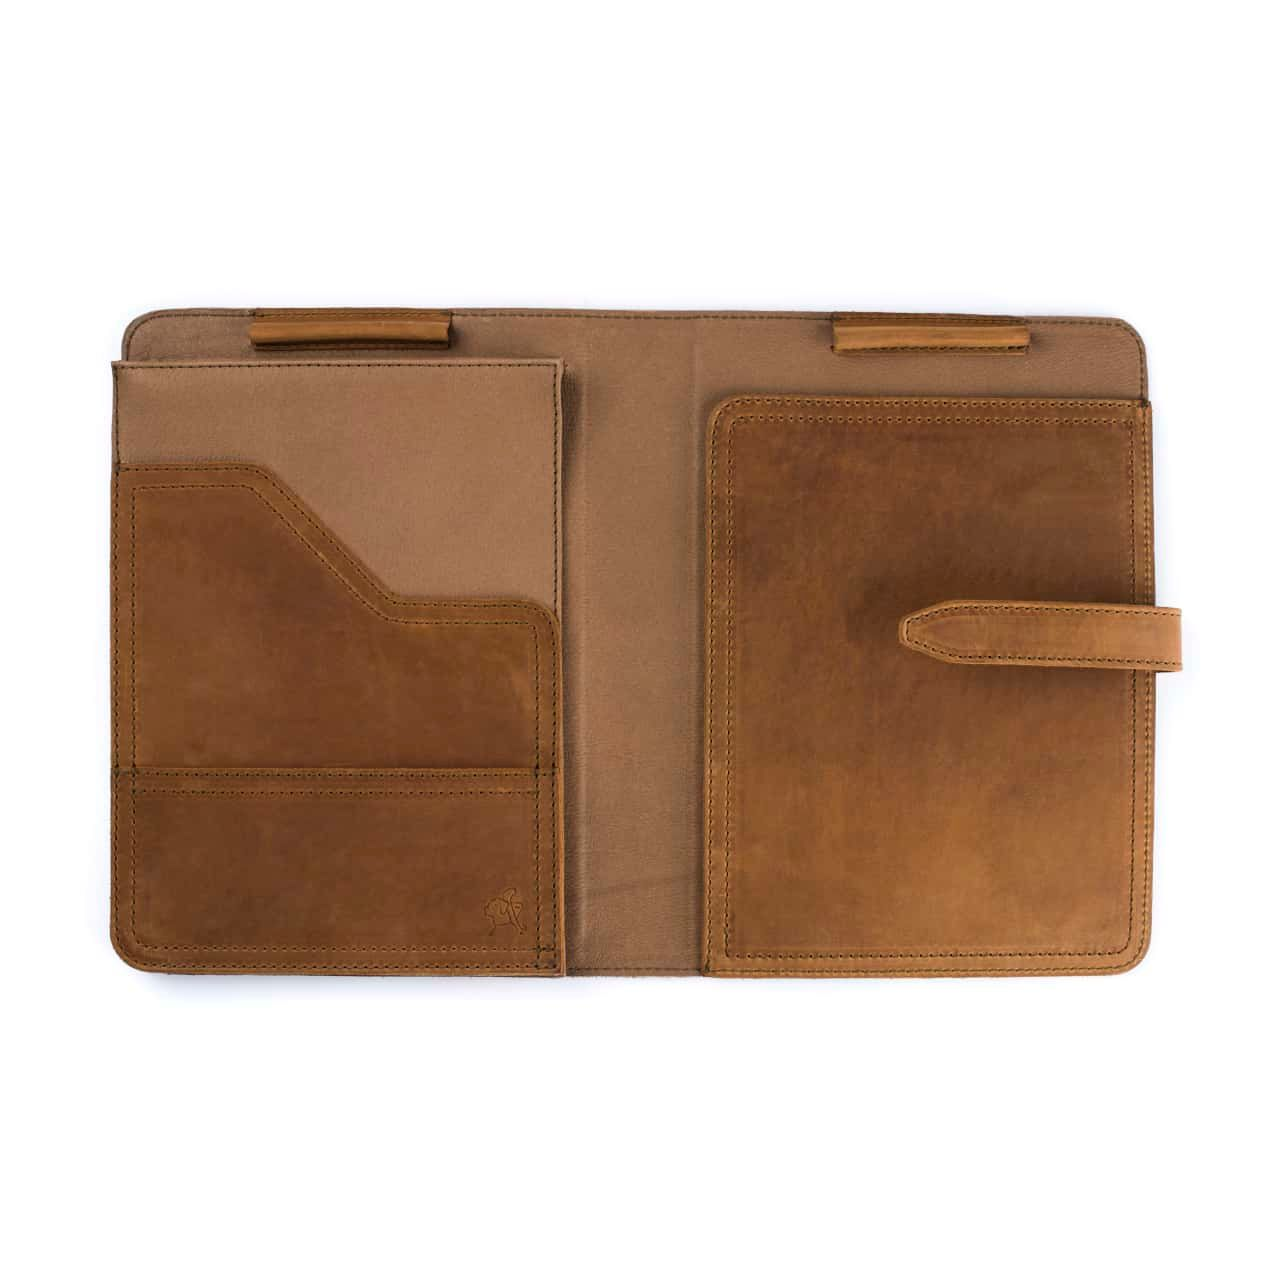 Leather Tablet Notepad Holder Open and Empty in the Color Tobacco